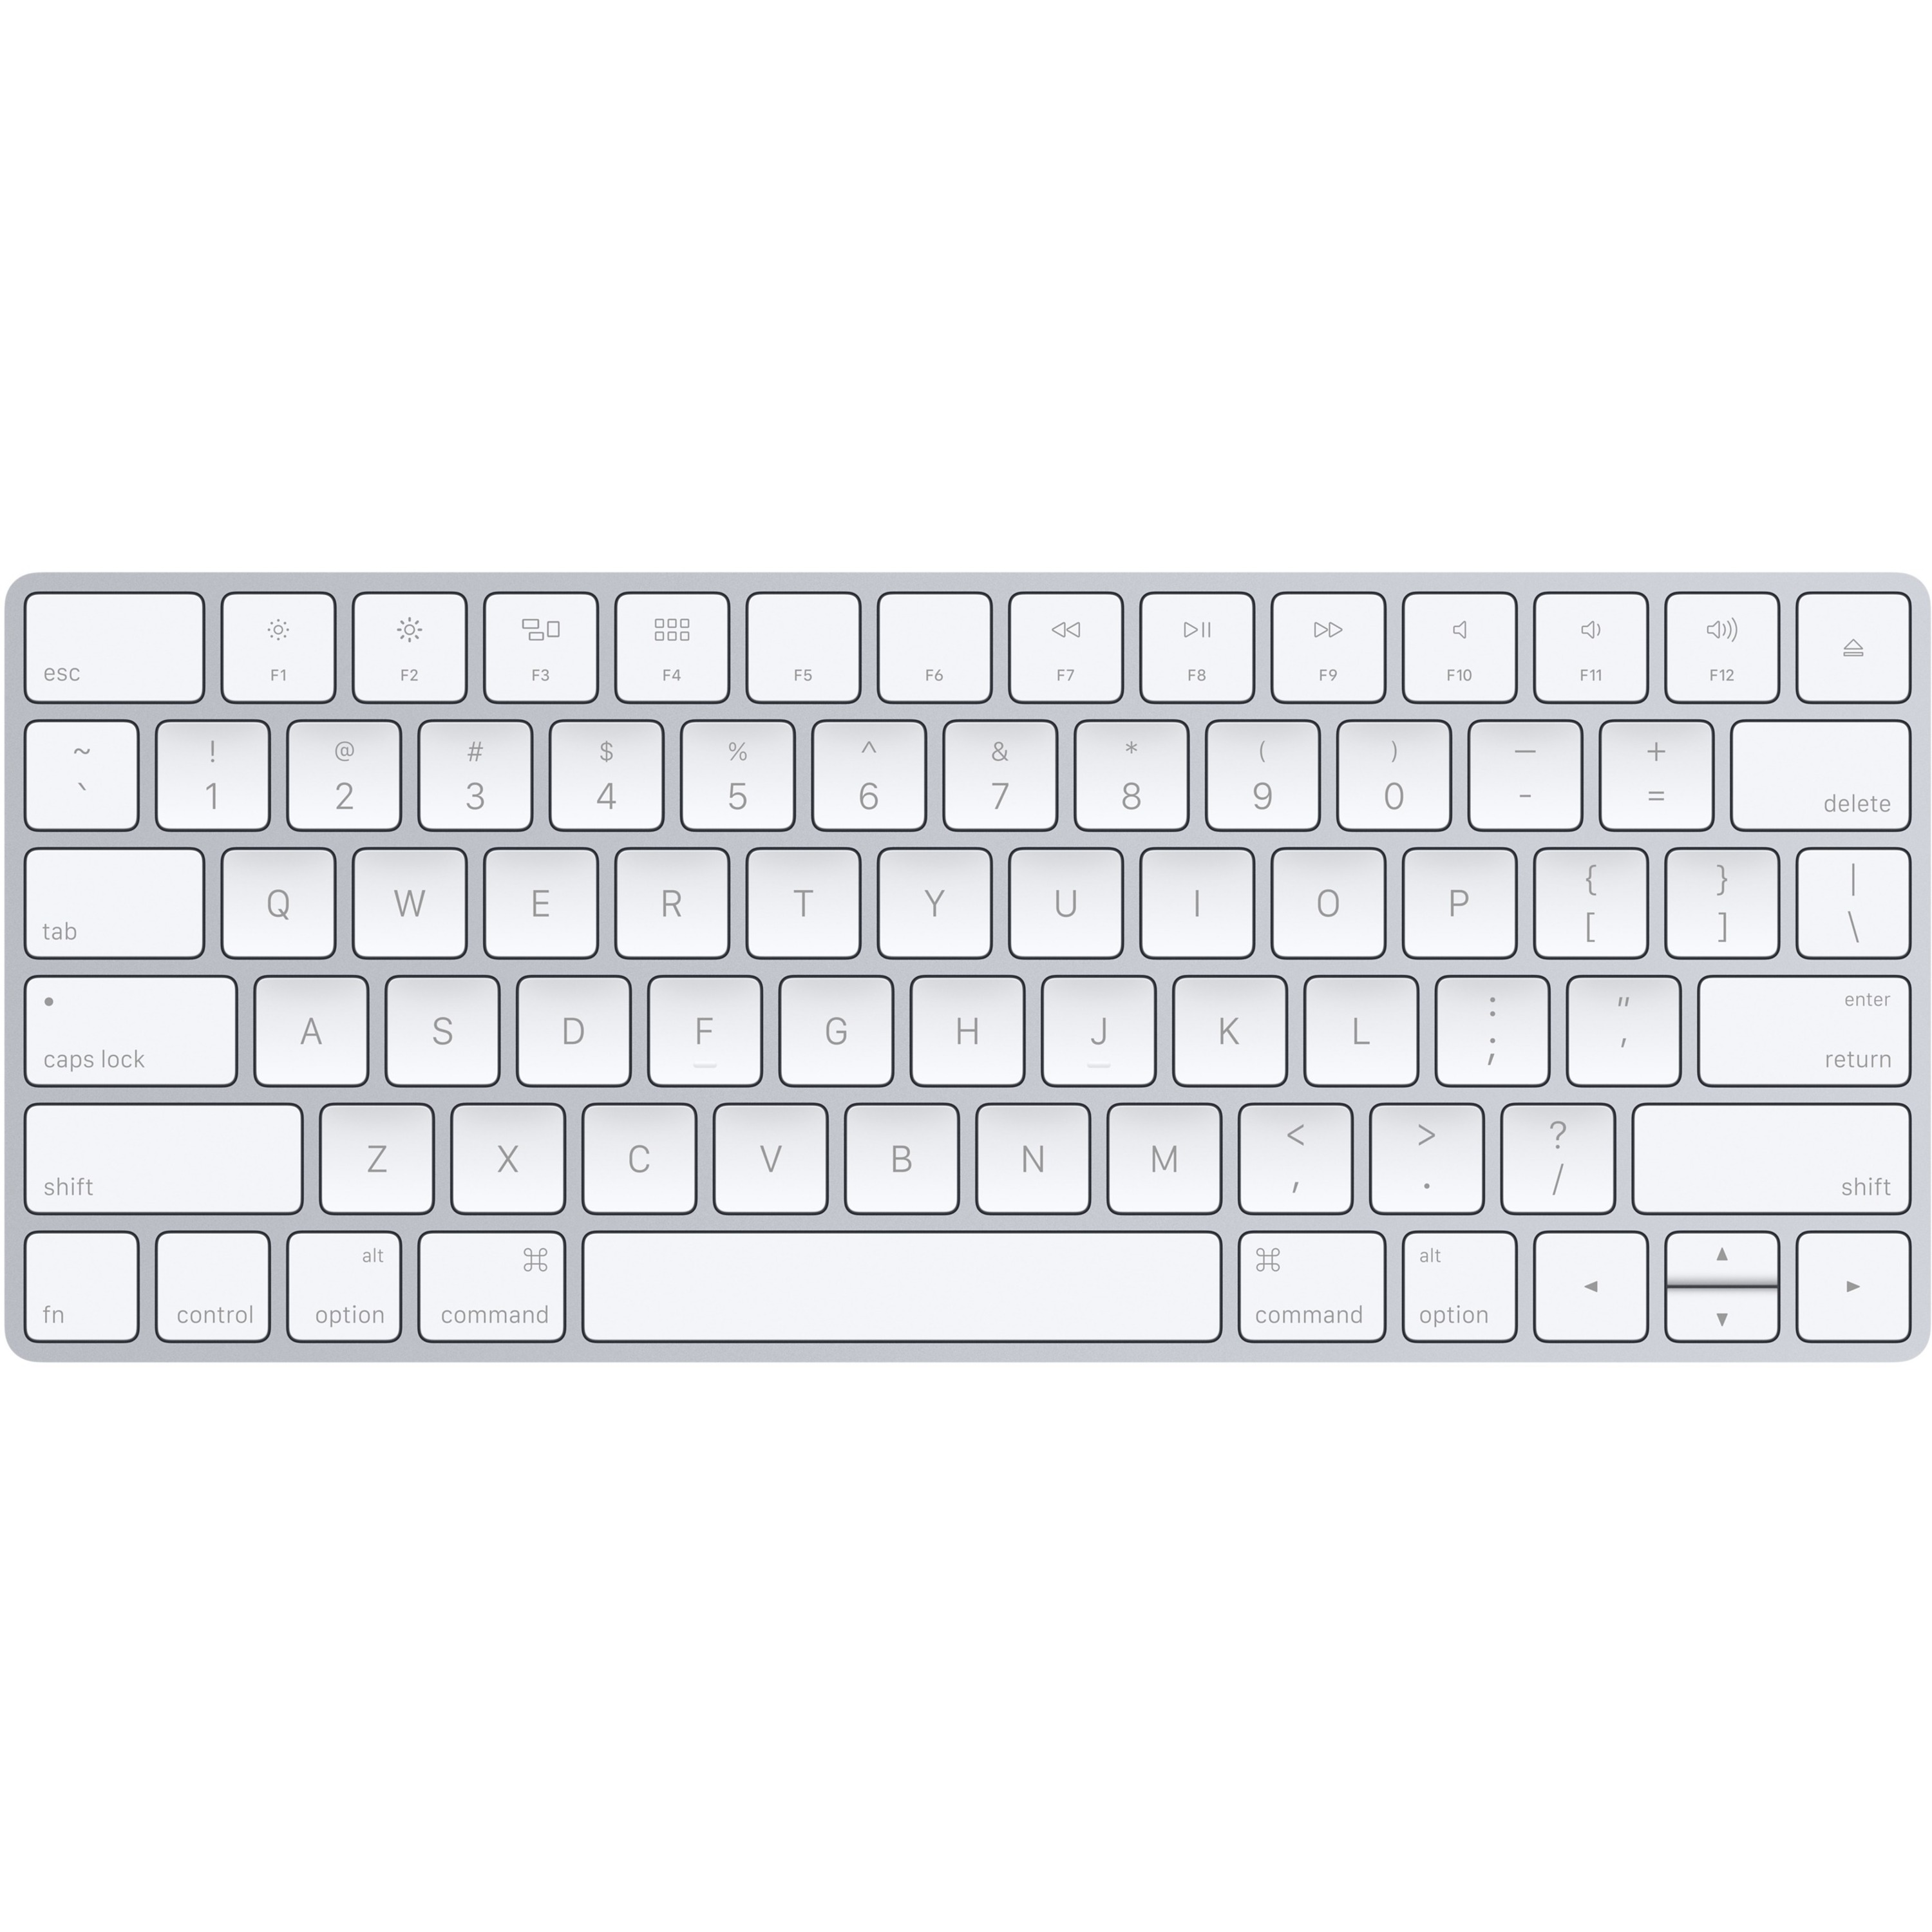 5b1e601ff42 Apple Magic Keyboard - US English - Wired/Wireless Connectivity - Bluetooth  - Lightning Interface - English, French - Compatible with Computer - QWERTY  Keys ...